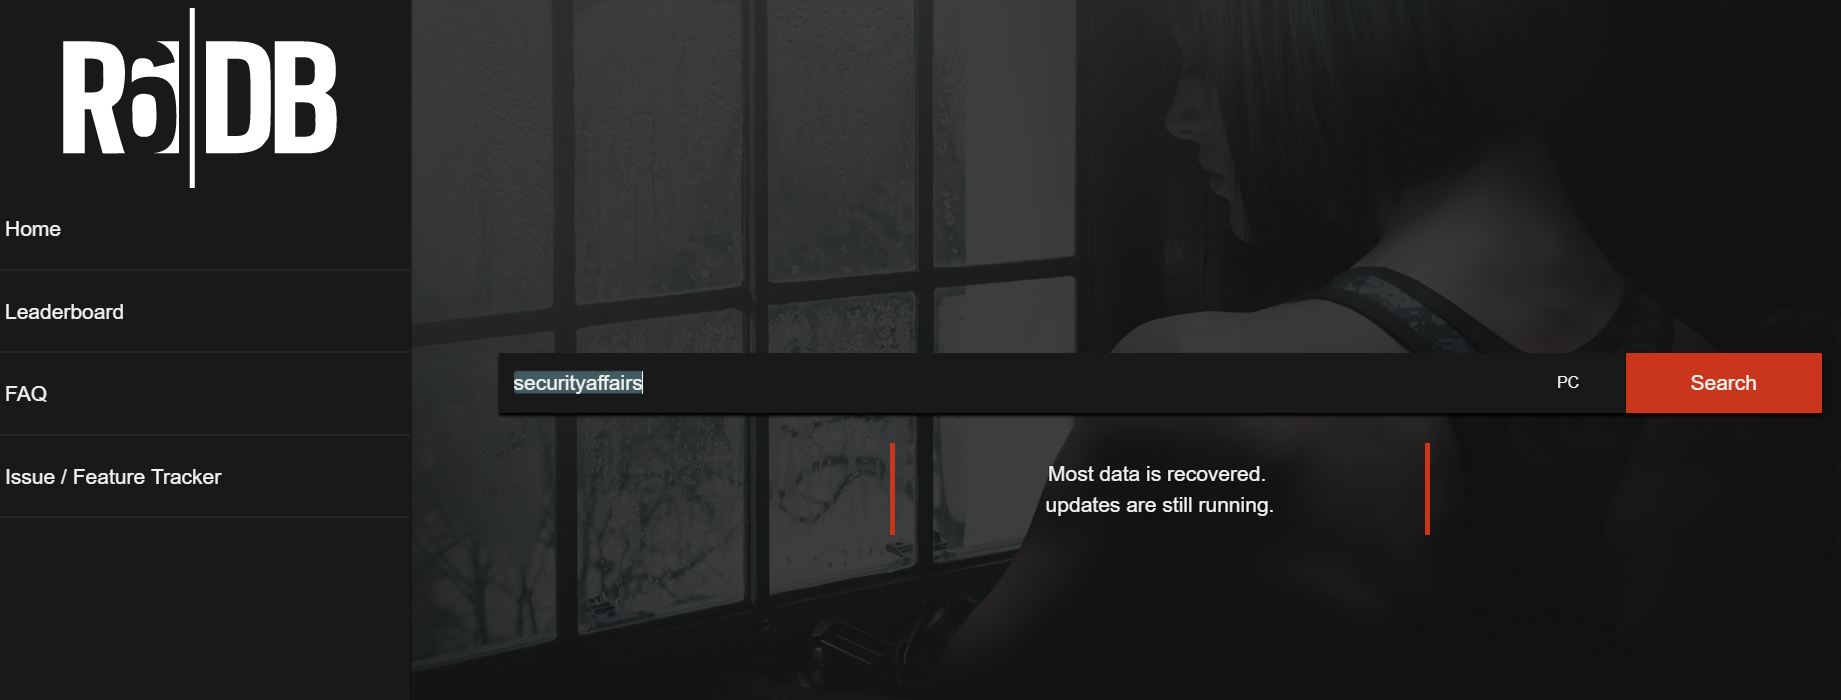 R6DB hacked. Rainbow Six Siege service's database wiped and held for ransom